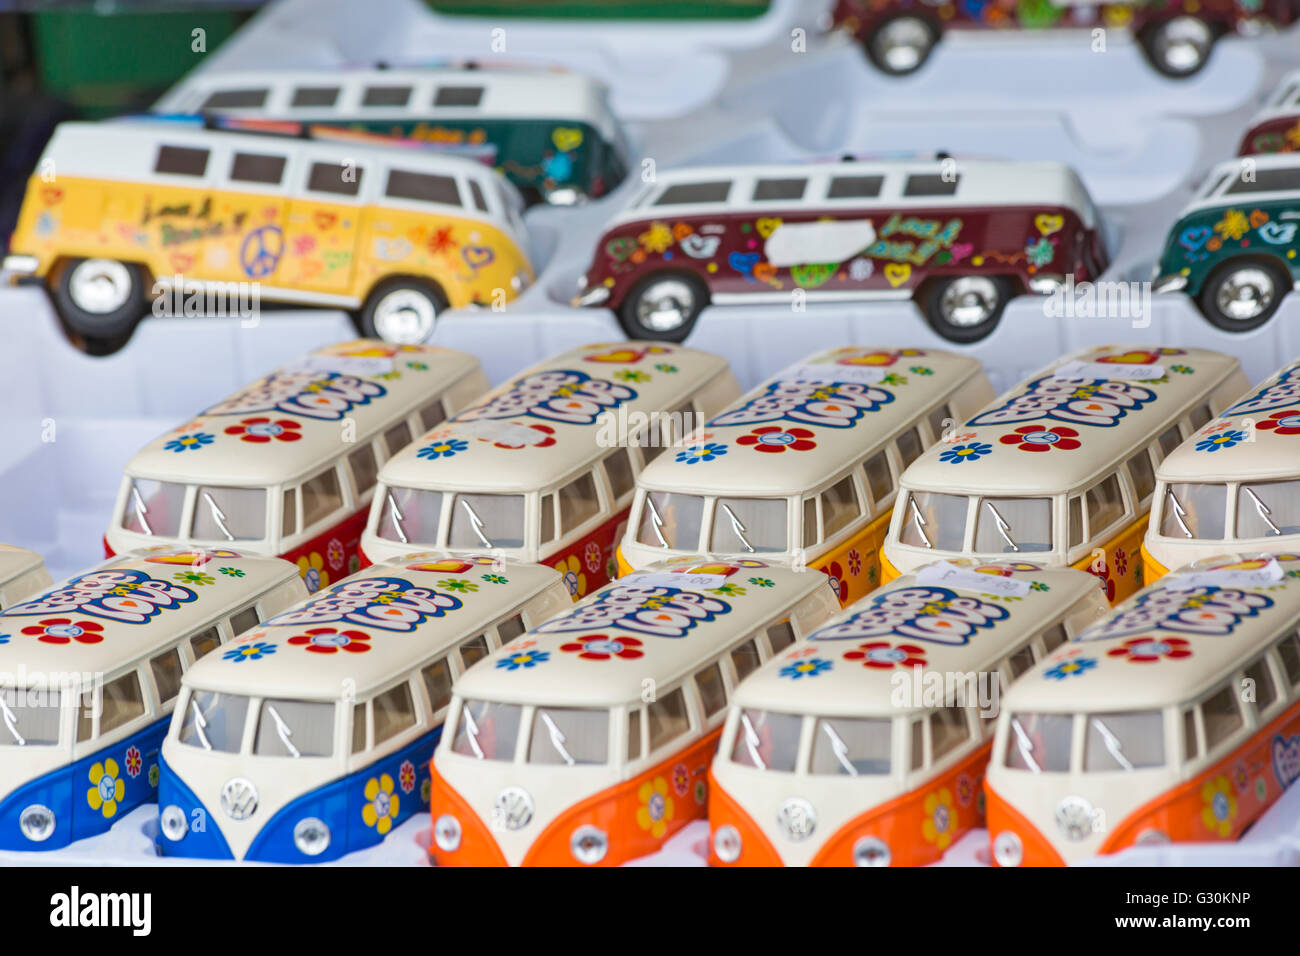 Vw Campervans Stockfotos & Vw Campervans Bilder - Alamy